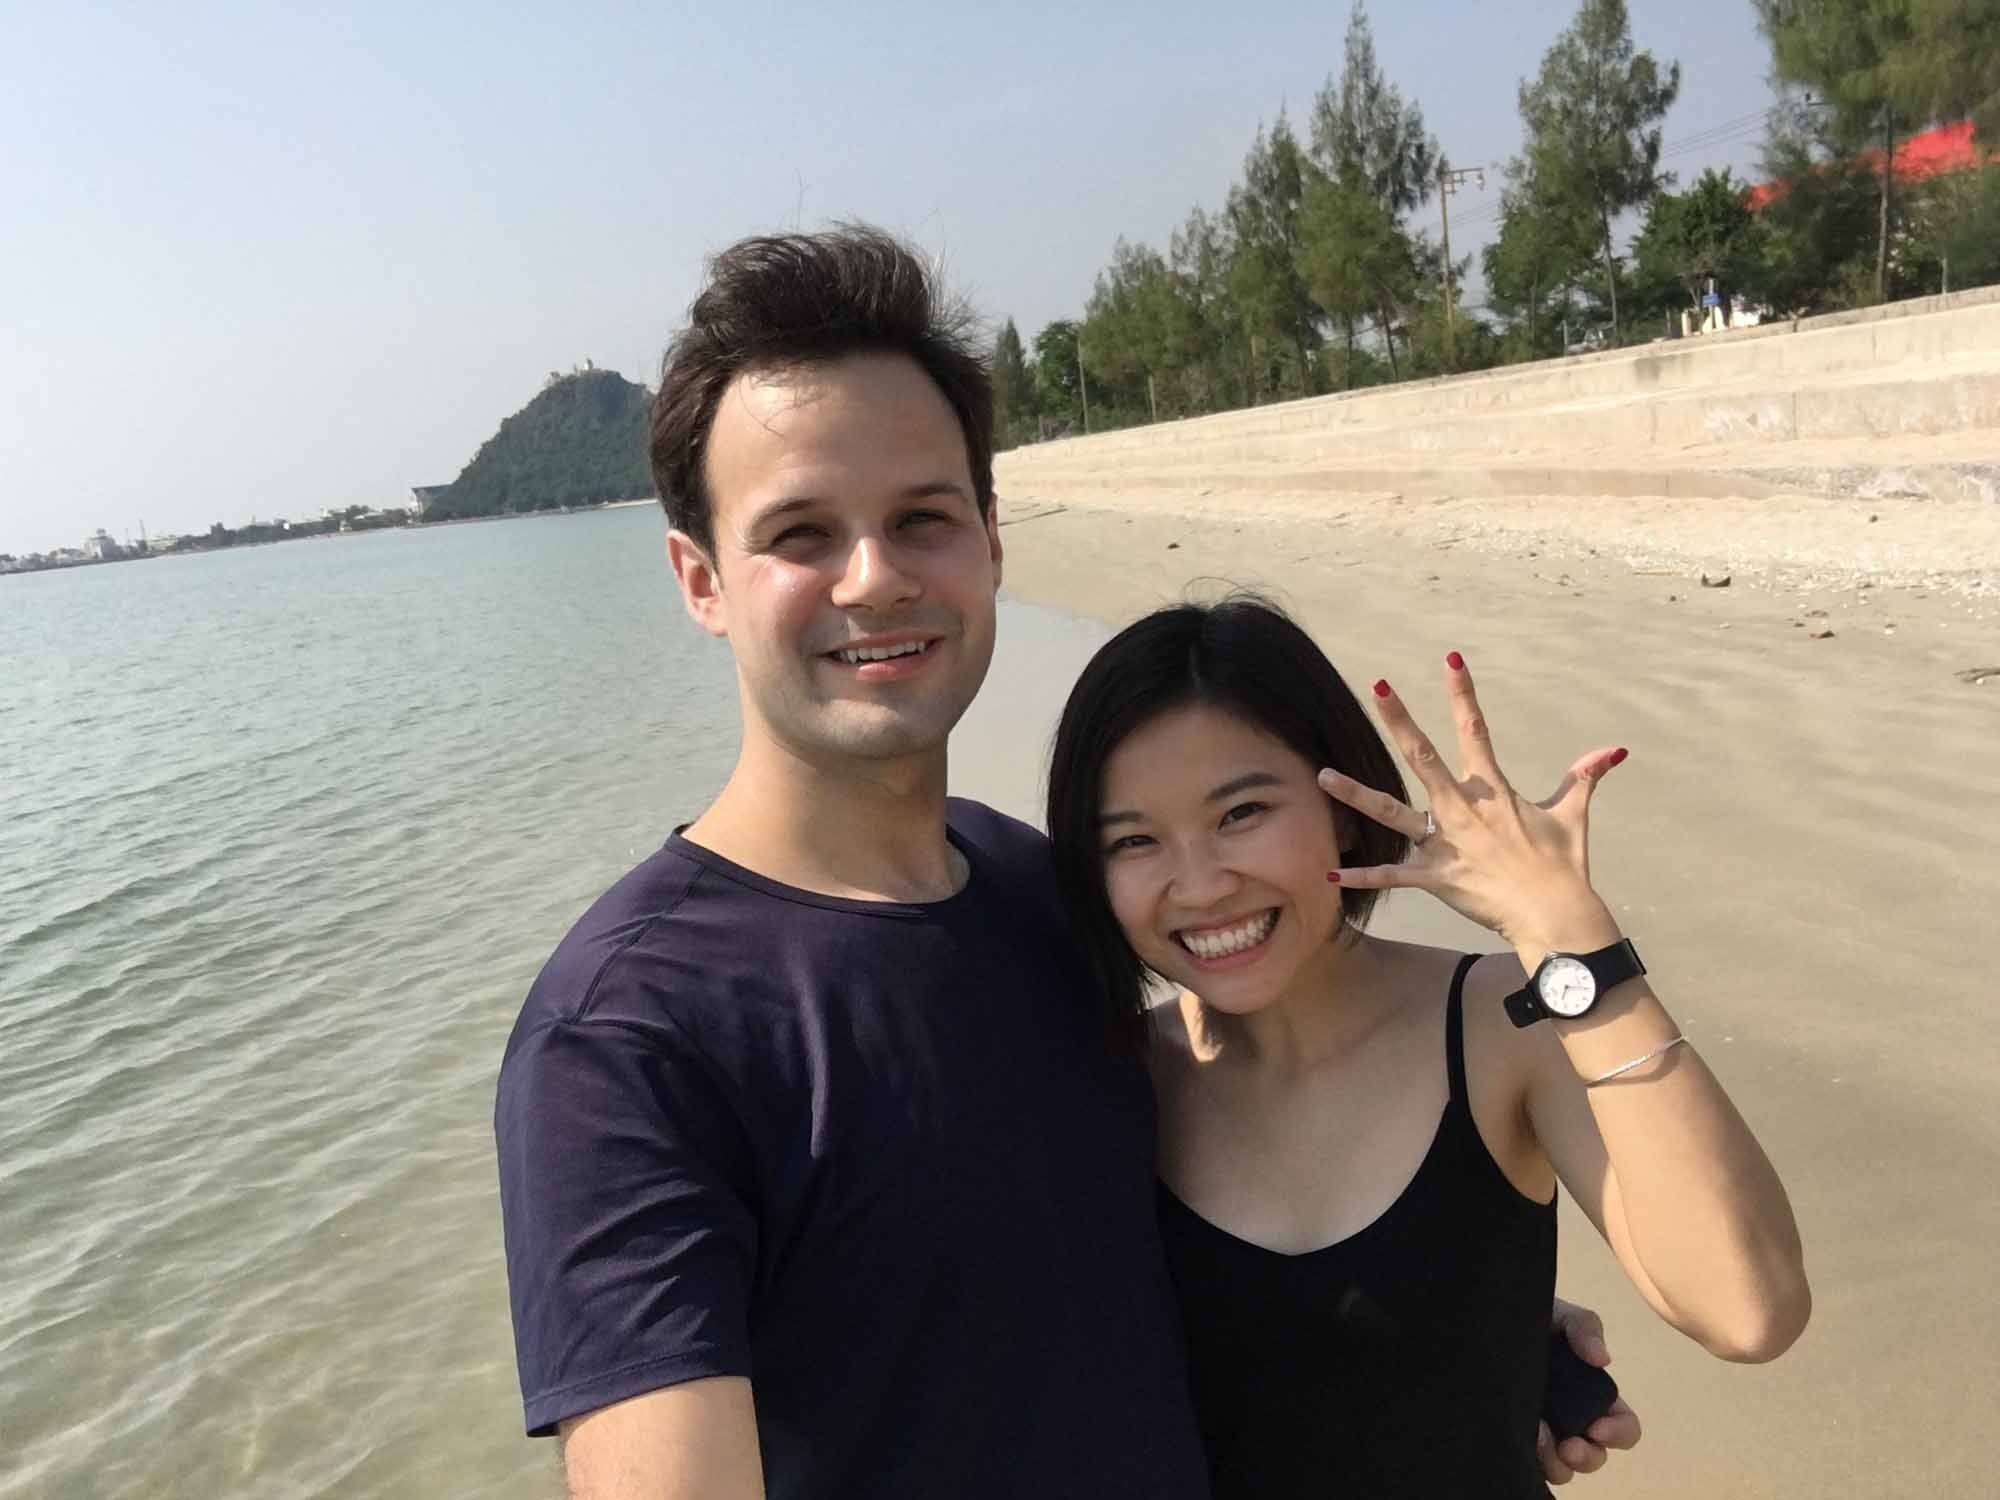 I proposed to Ting just a few years later